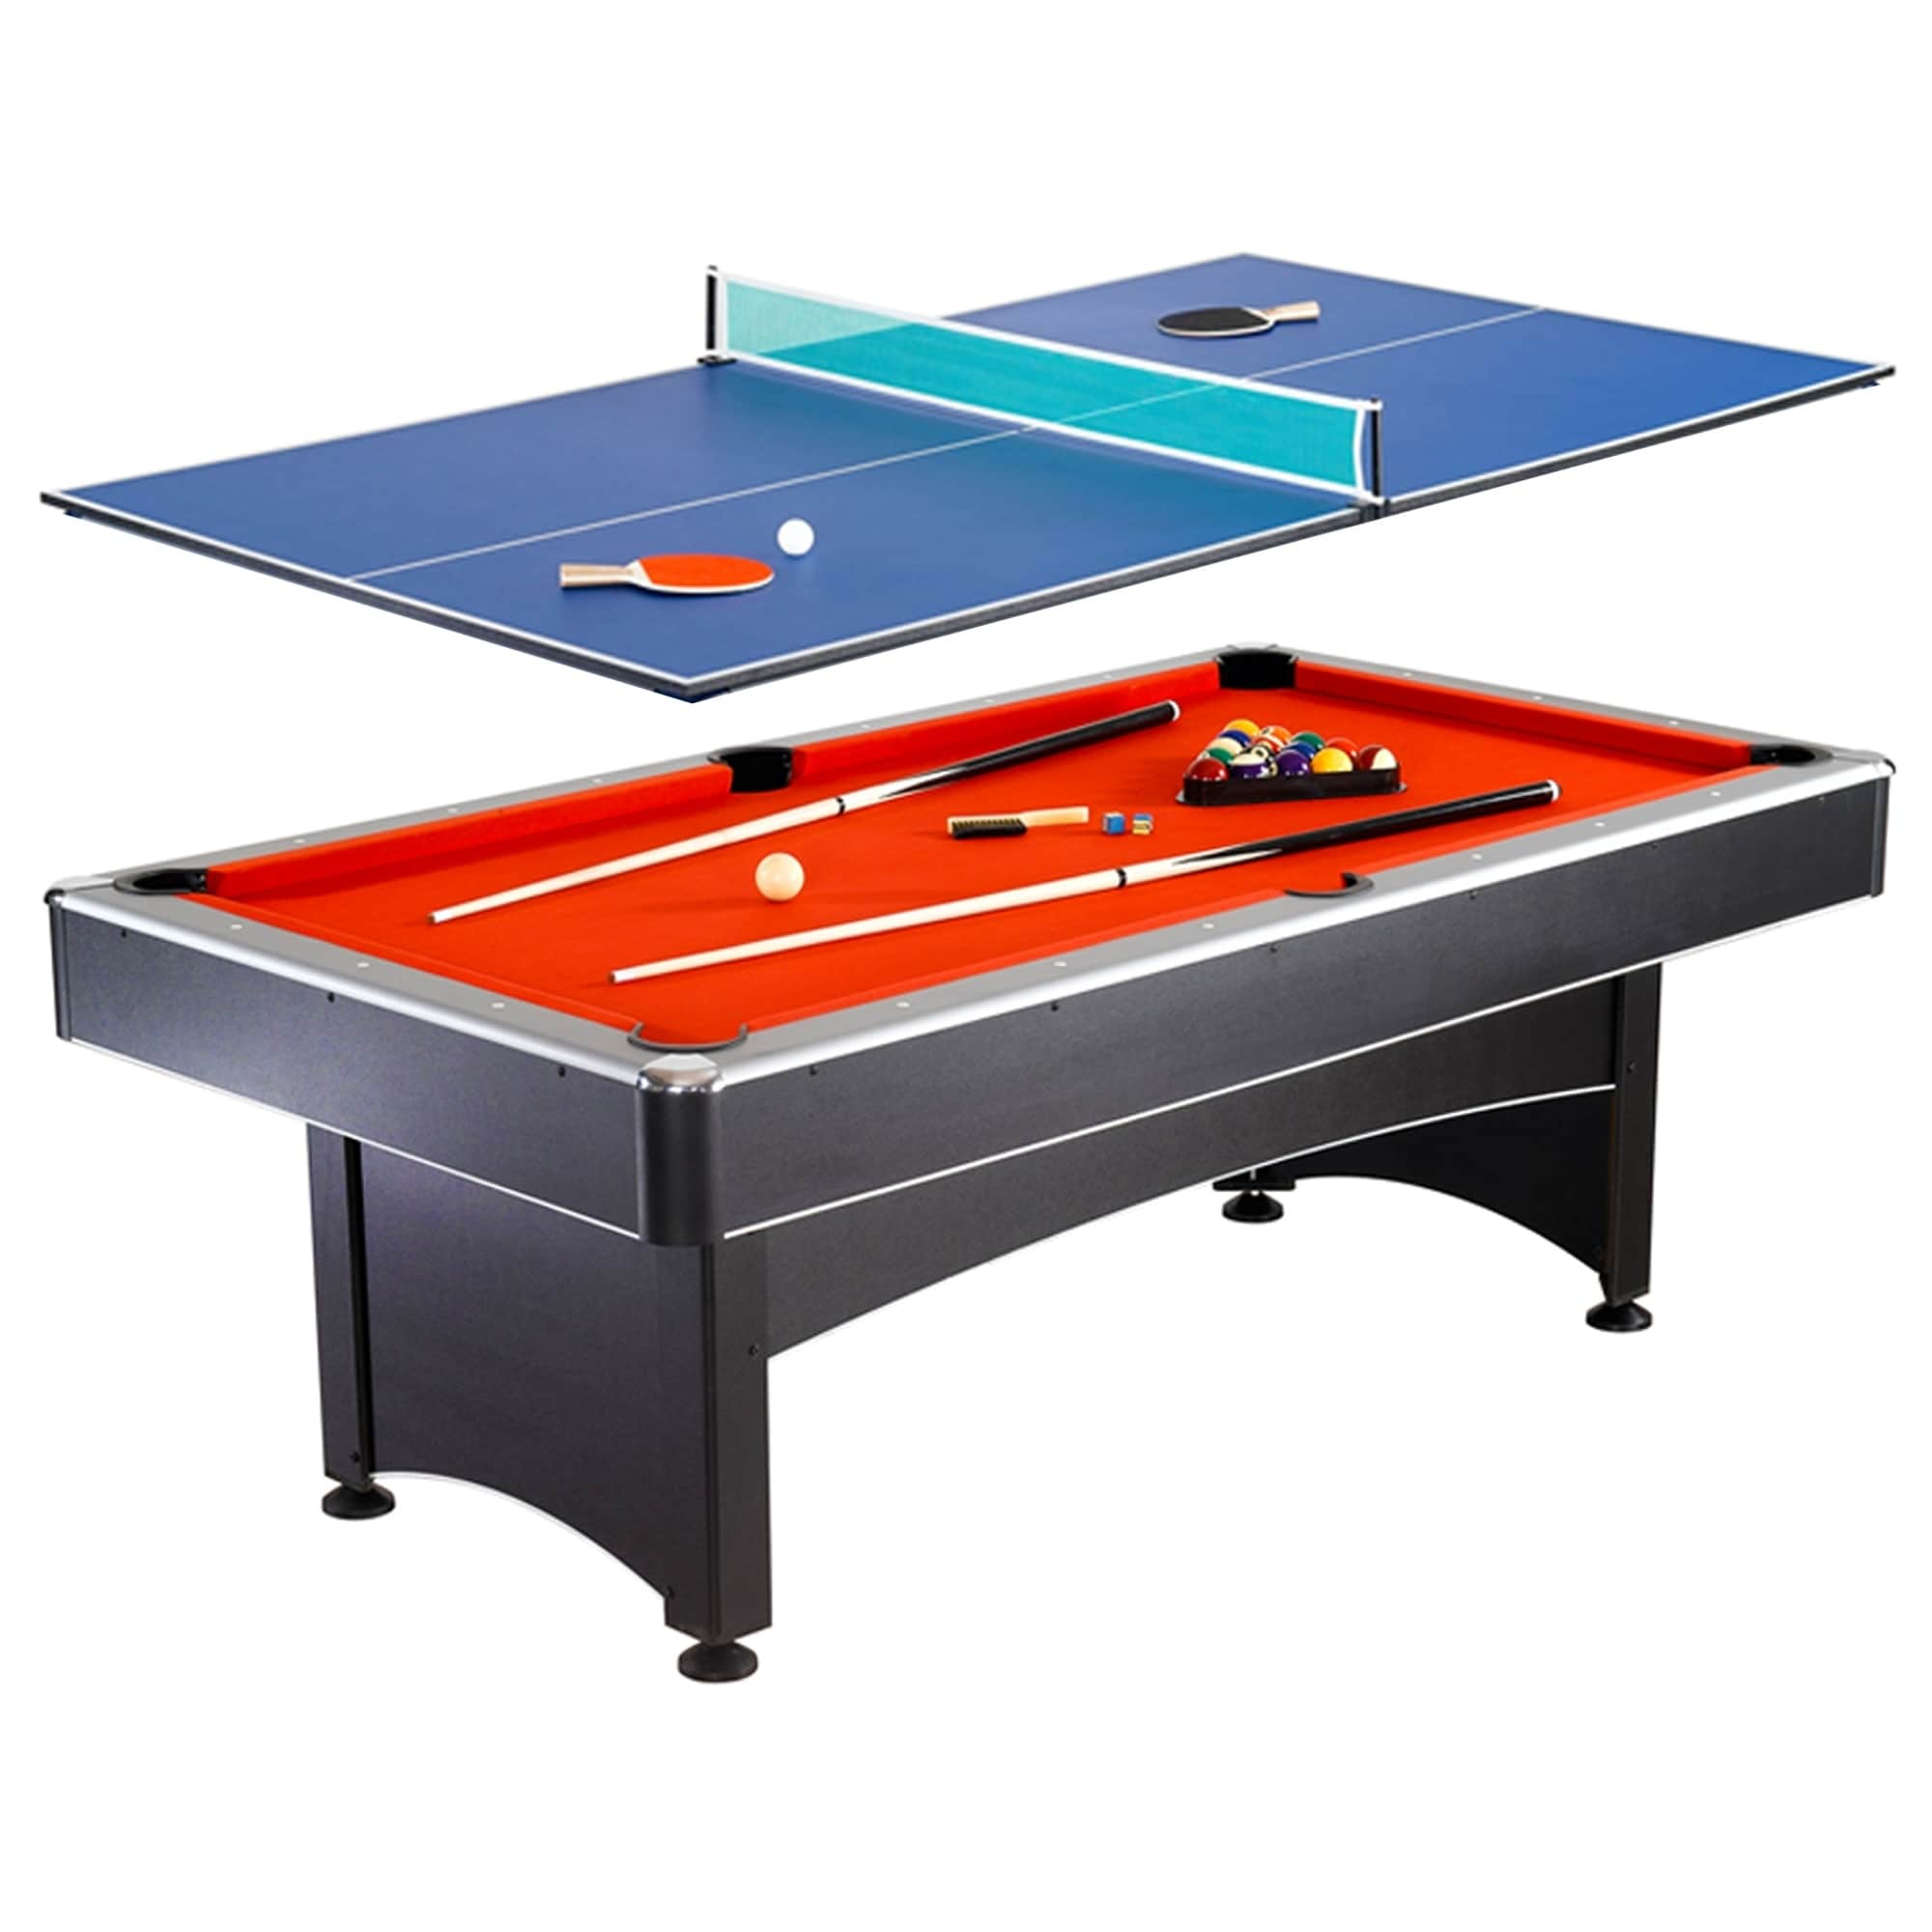 table shipping overstock free pool toys product game sports fat foot and hockey original pockey today billiards air cat in black